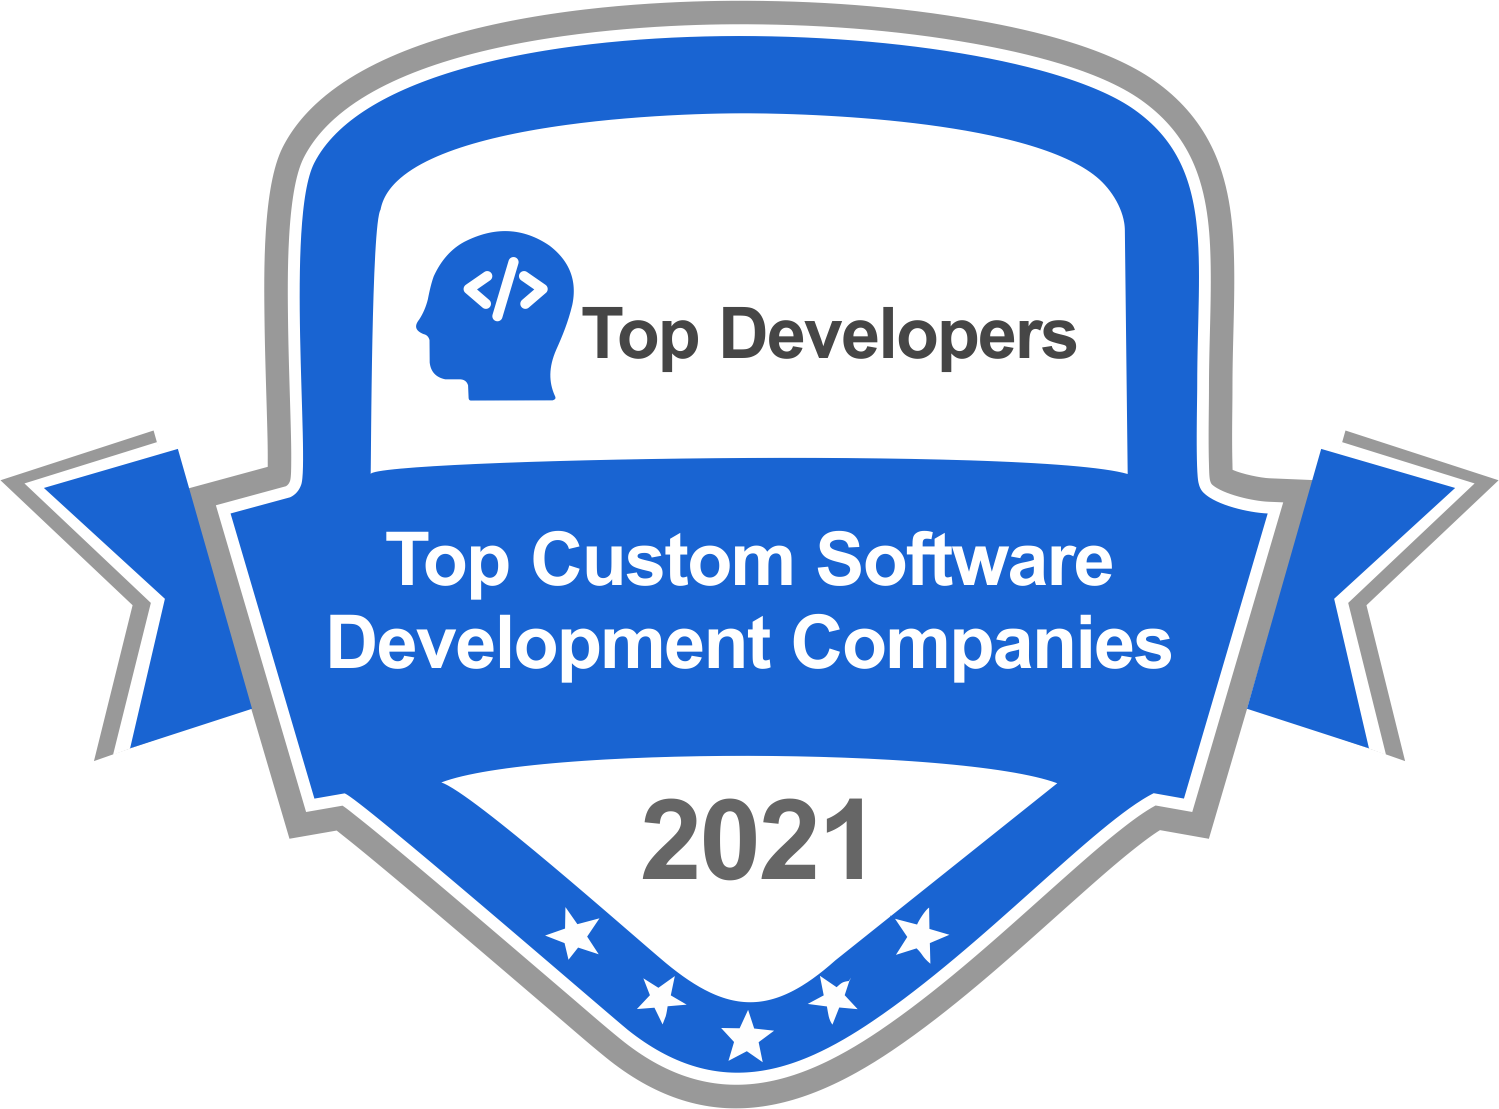 topdevelopers.biz badge image